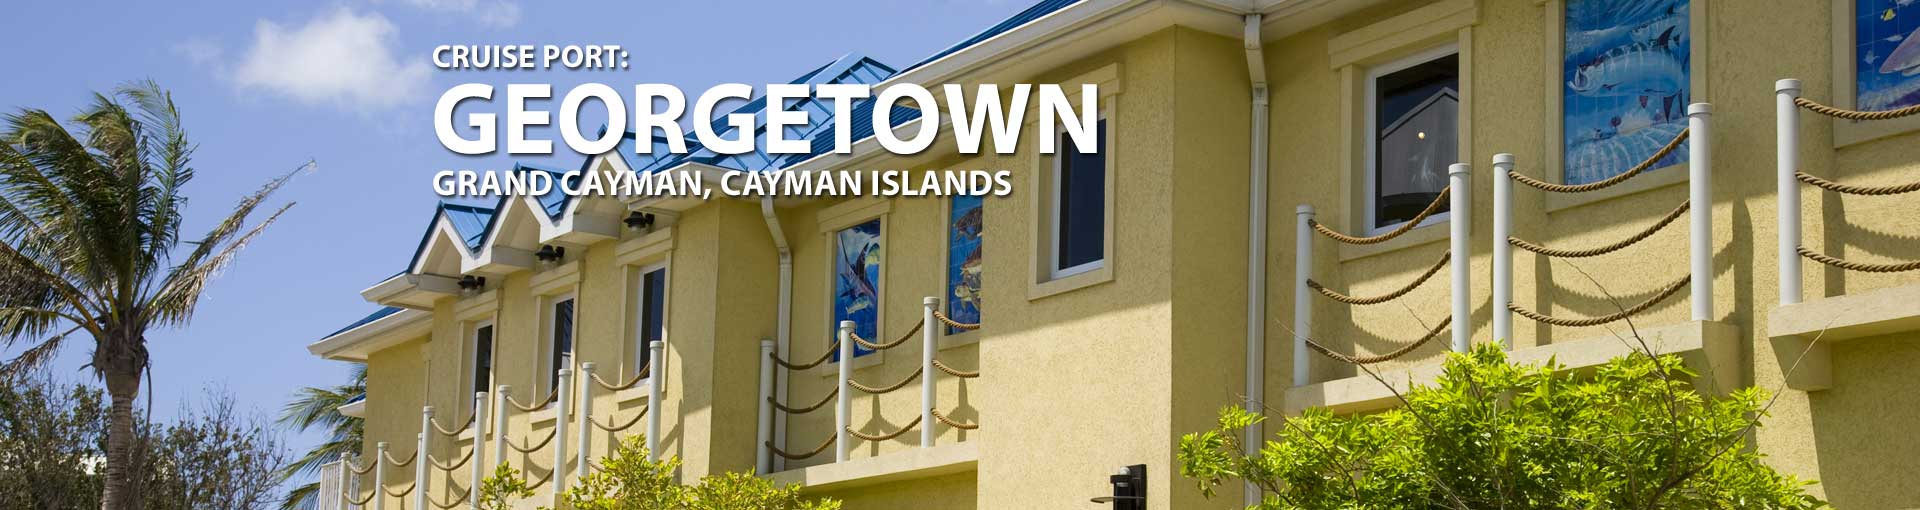 Cruises to Georgetown, Grand Cayman, Cayman Island